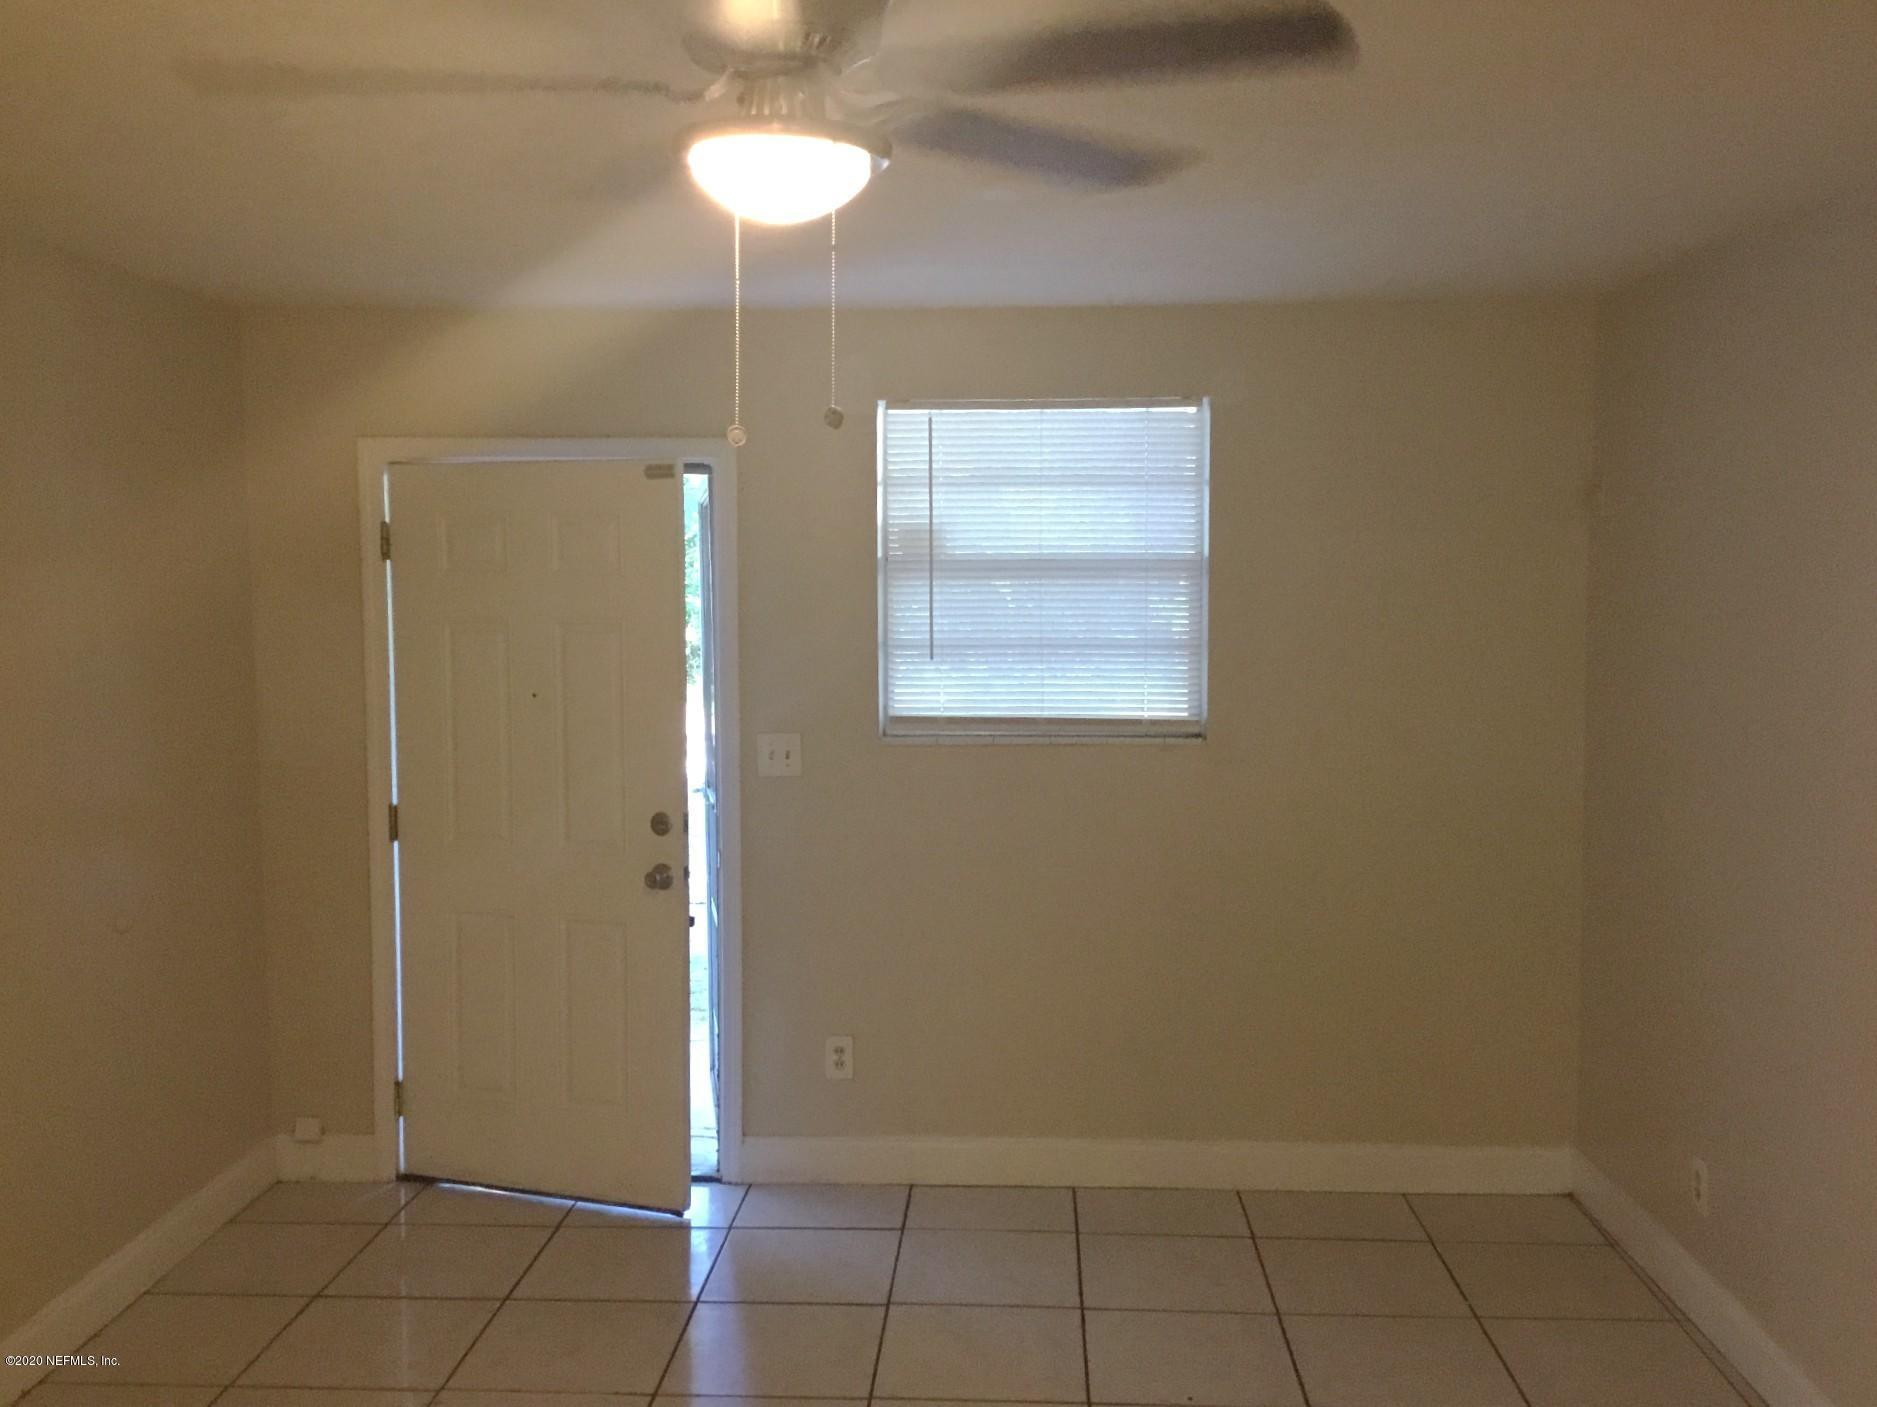 7180 CONANT, JACKSONVILLE, FLORIDA 32210, 2 Bedrooms Bedrooms, ,1 BathroomBathrooms,Rental,For Rent,CONANT,1083188